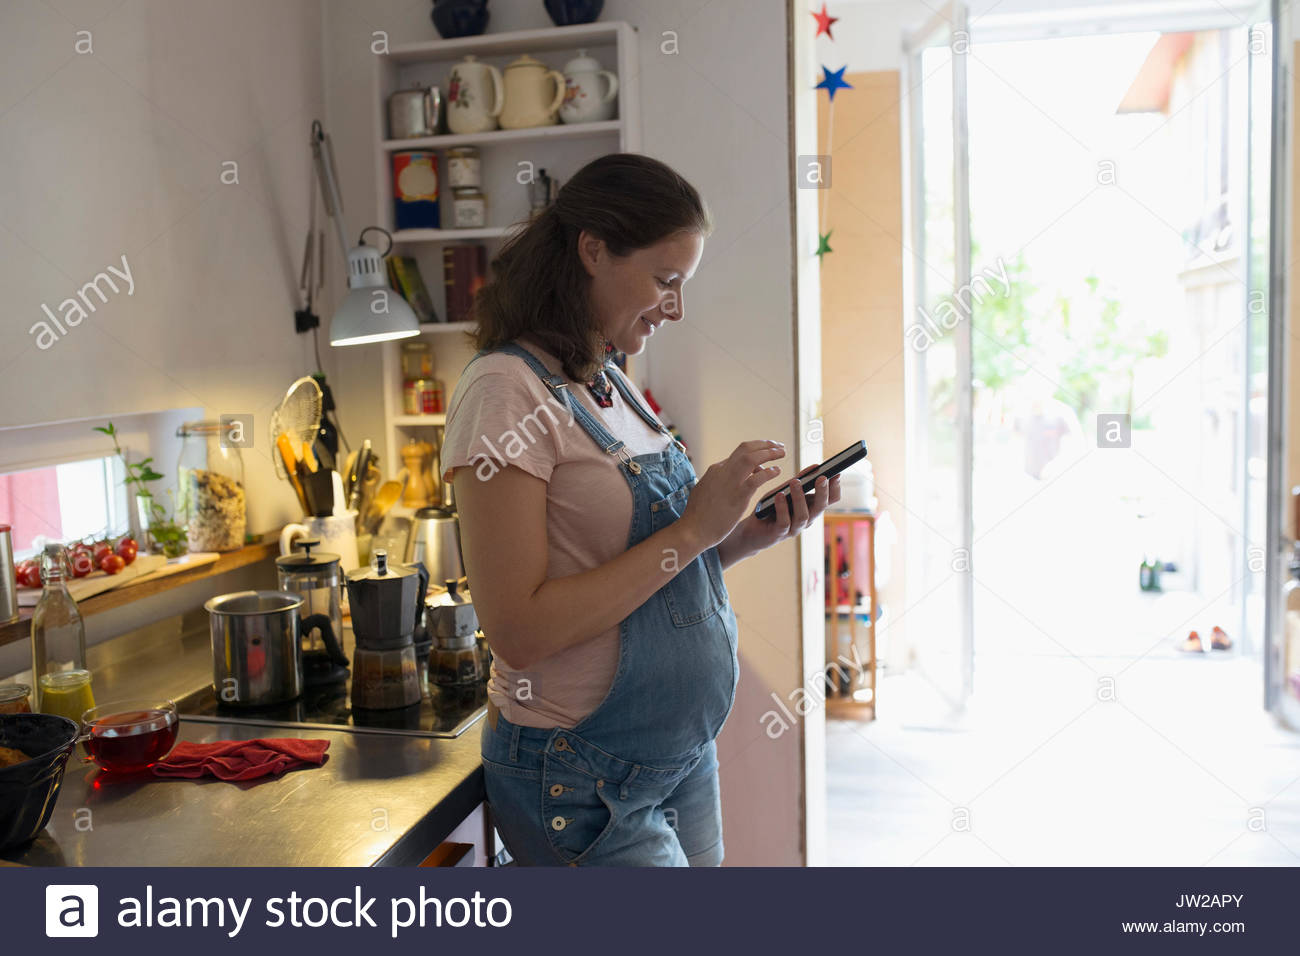 Pregnant woman using cell phone in kitchen - Stock Image